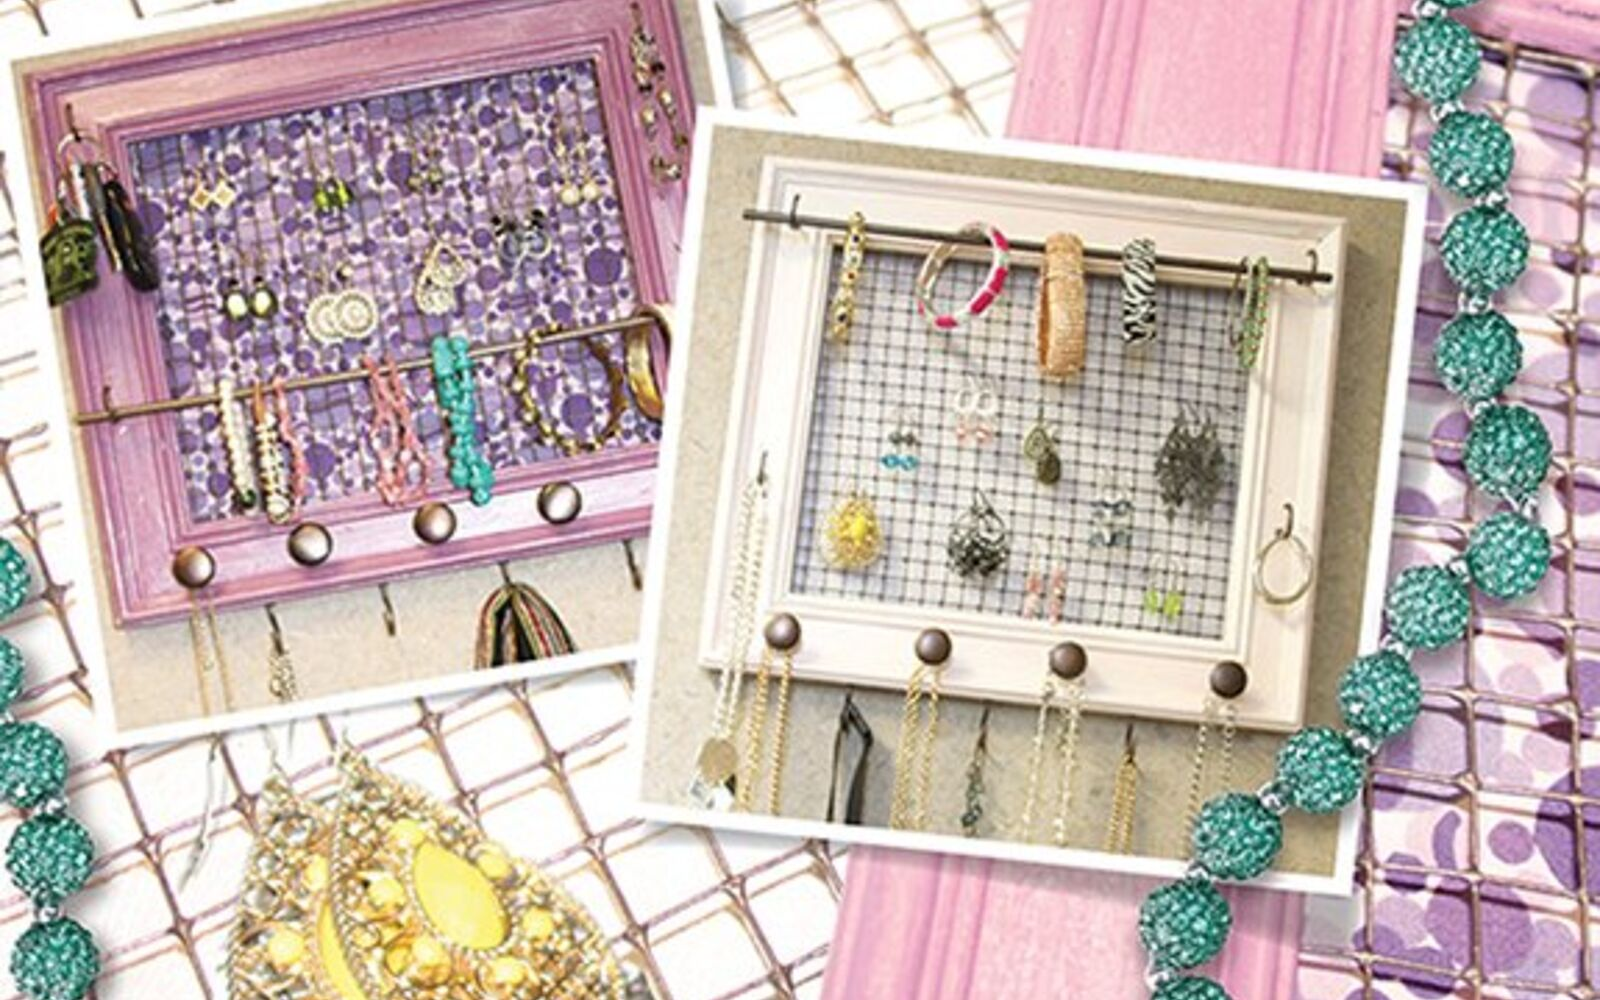 s 30 fun ways to keep your home organized, Make A Jewelry Organizer With Chicken Wire